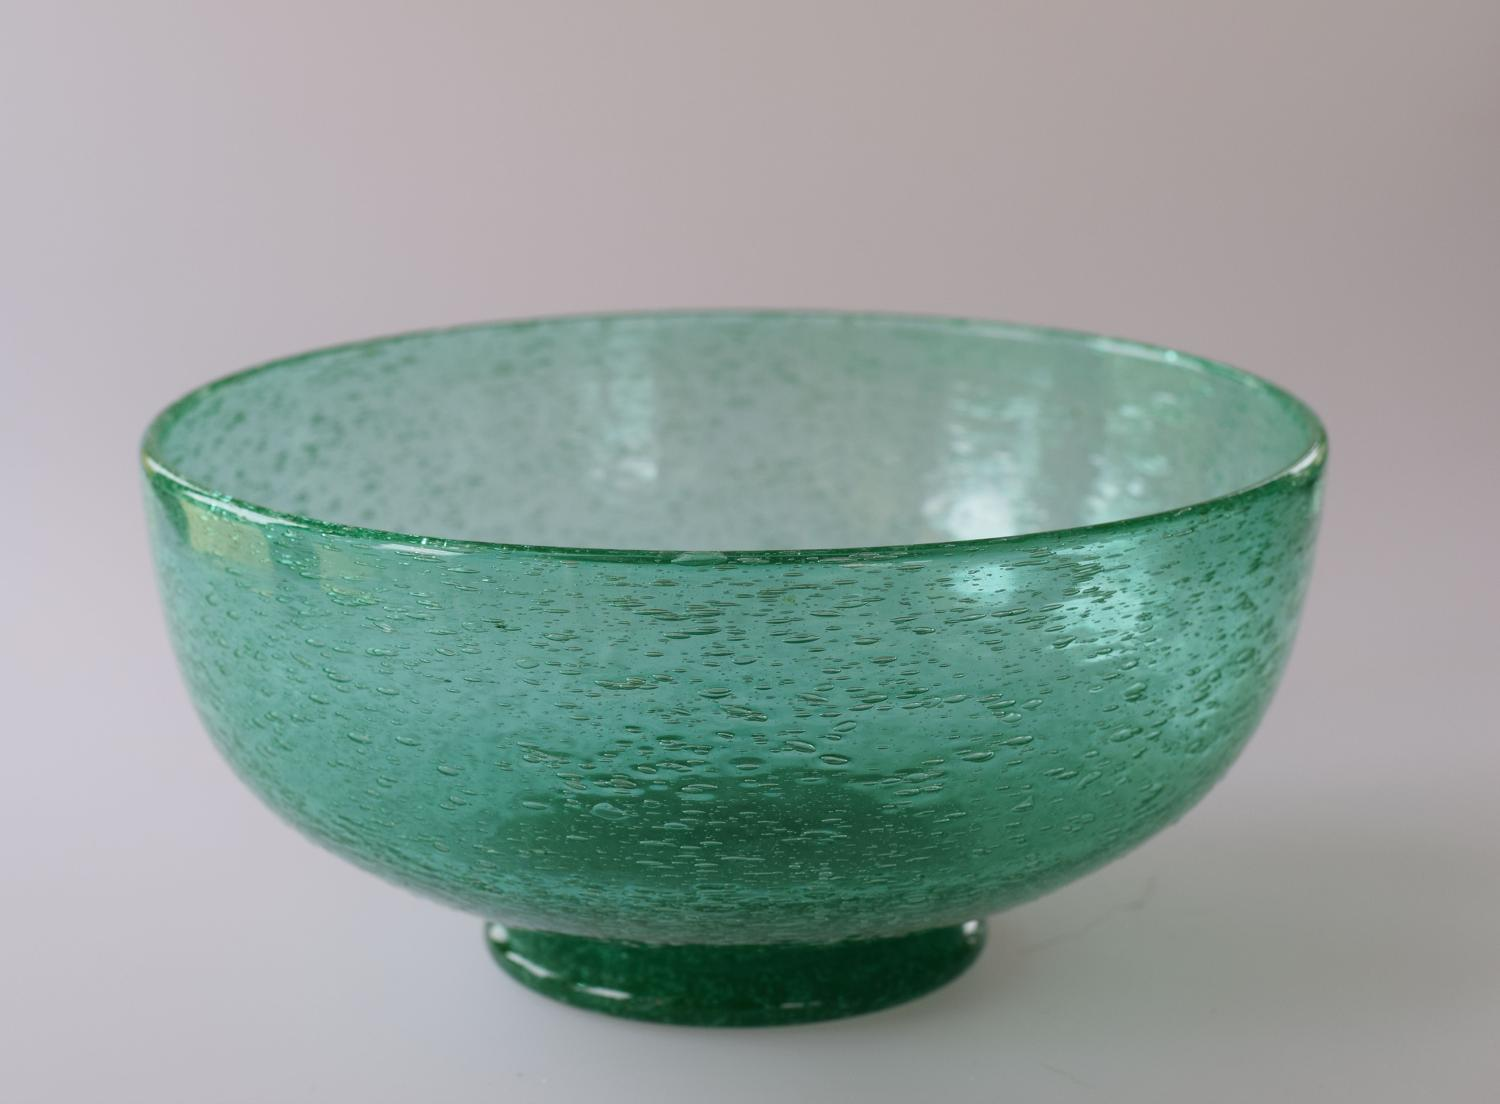 Emerald green bubble bowl, John Walsh Walsh